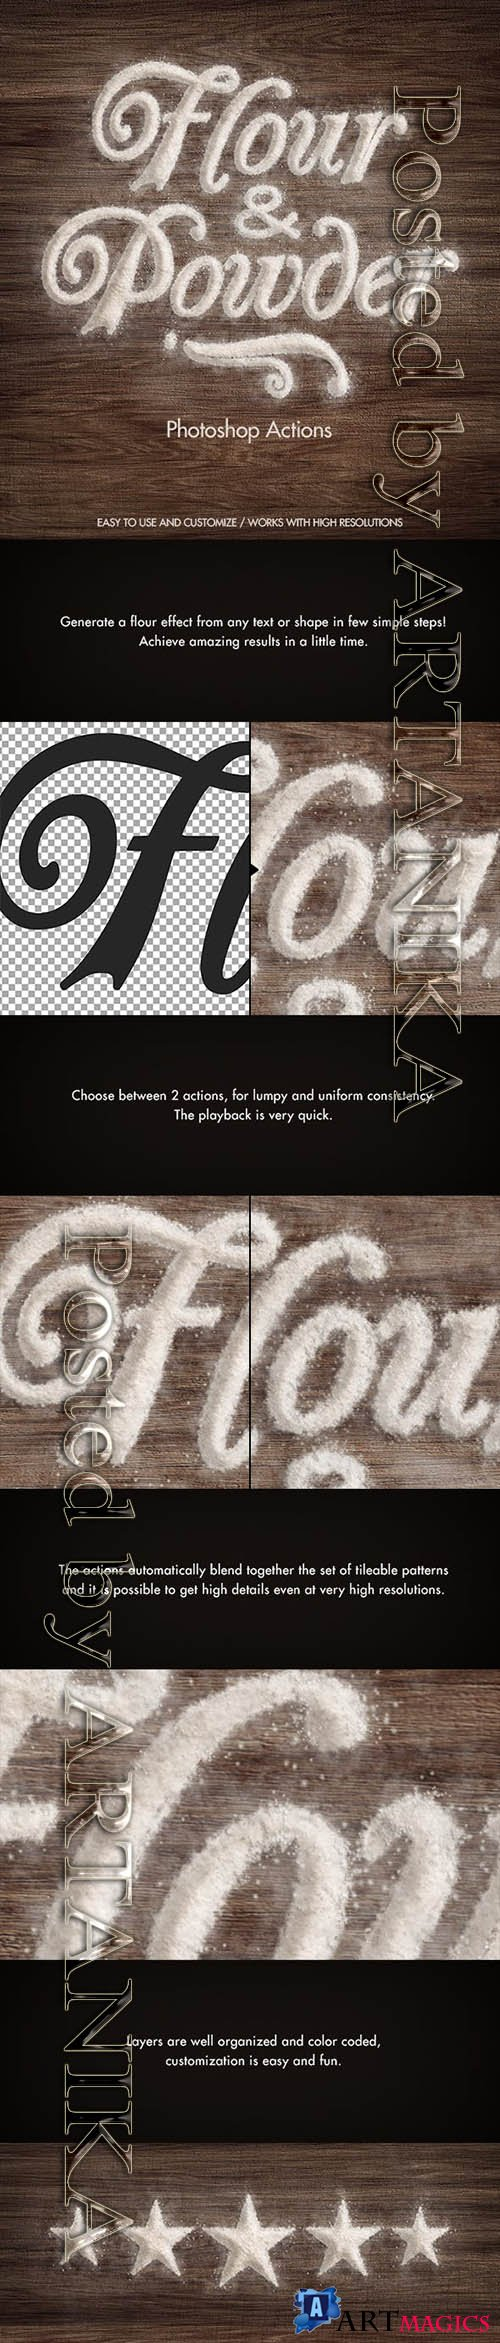 Flour & Powder - Photoshop Actions 6712507